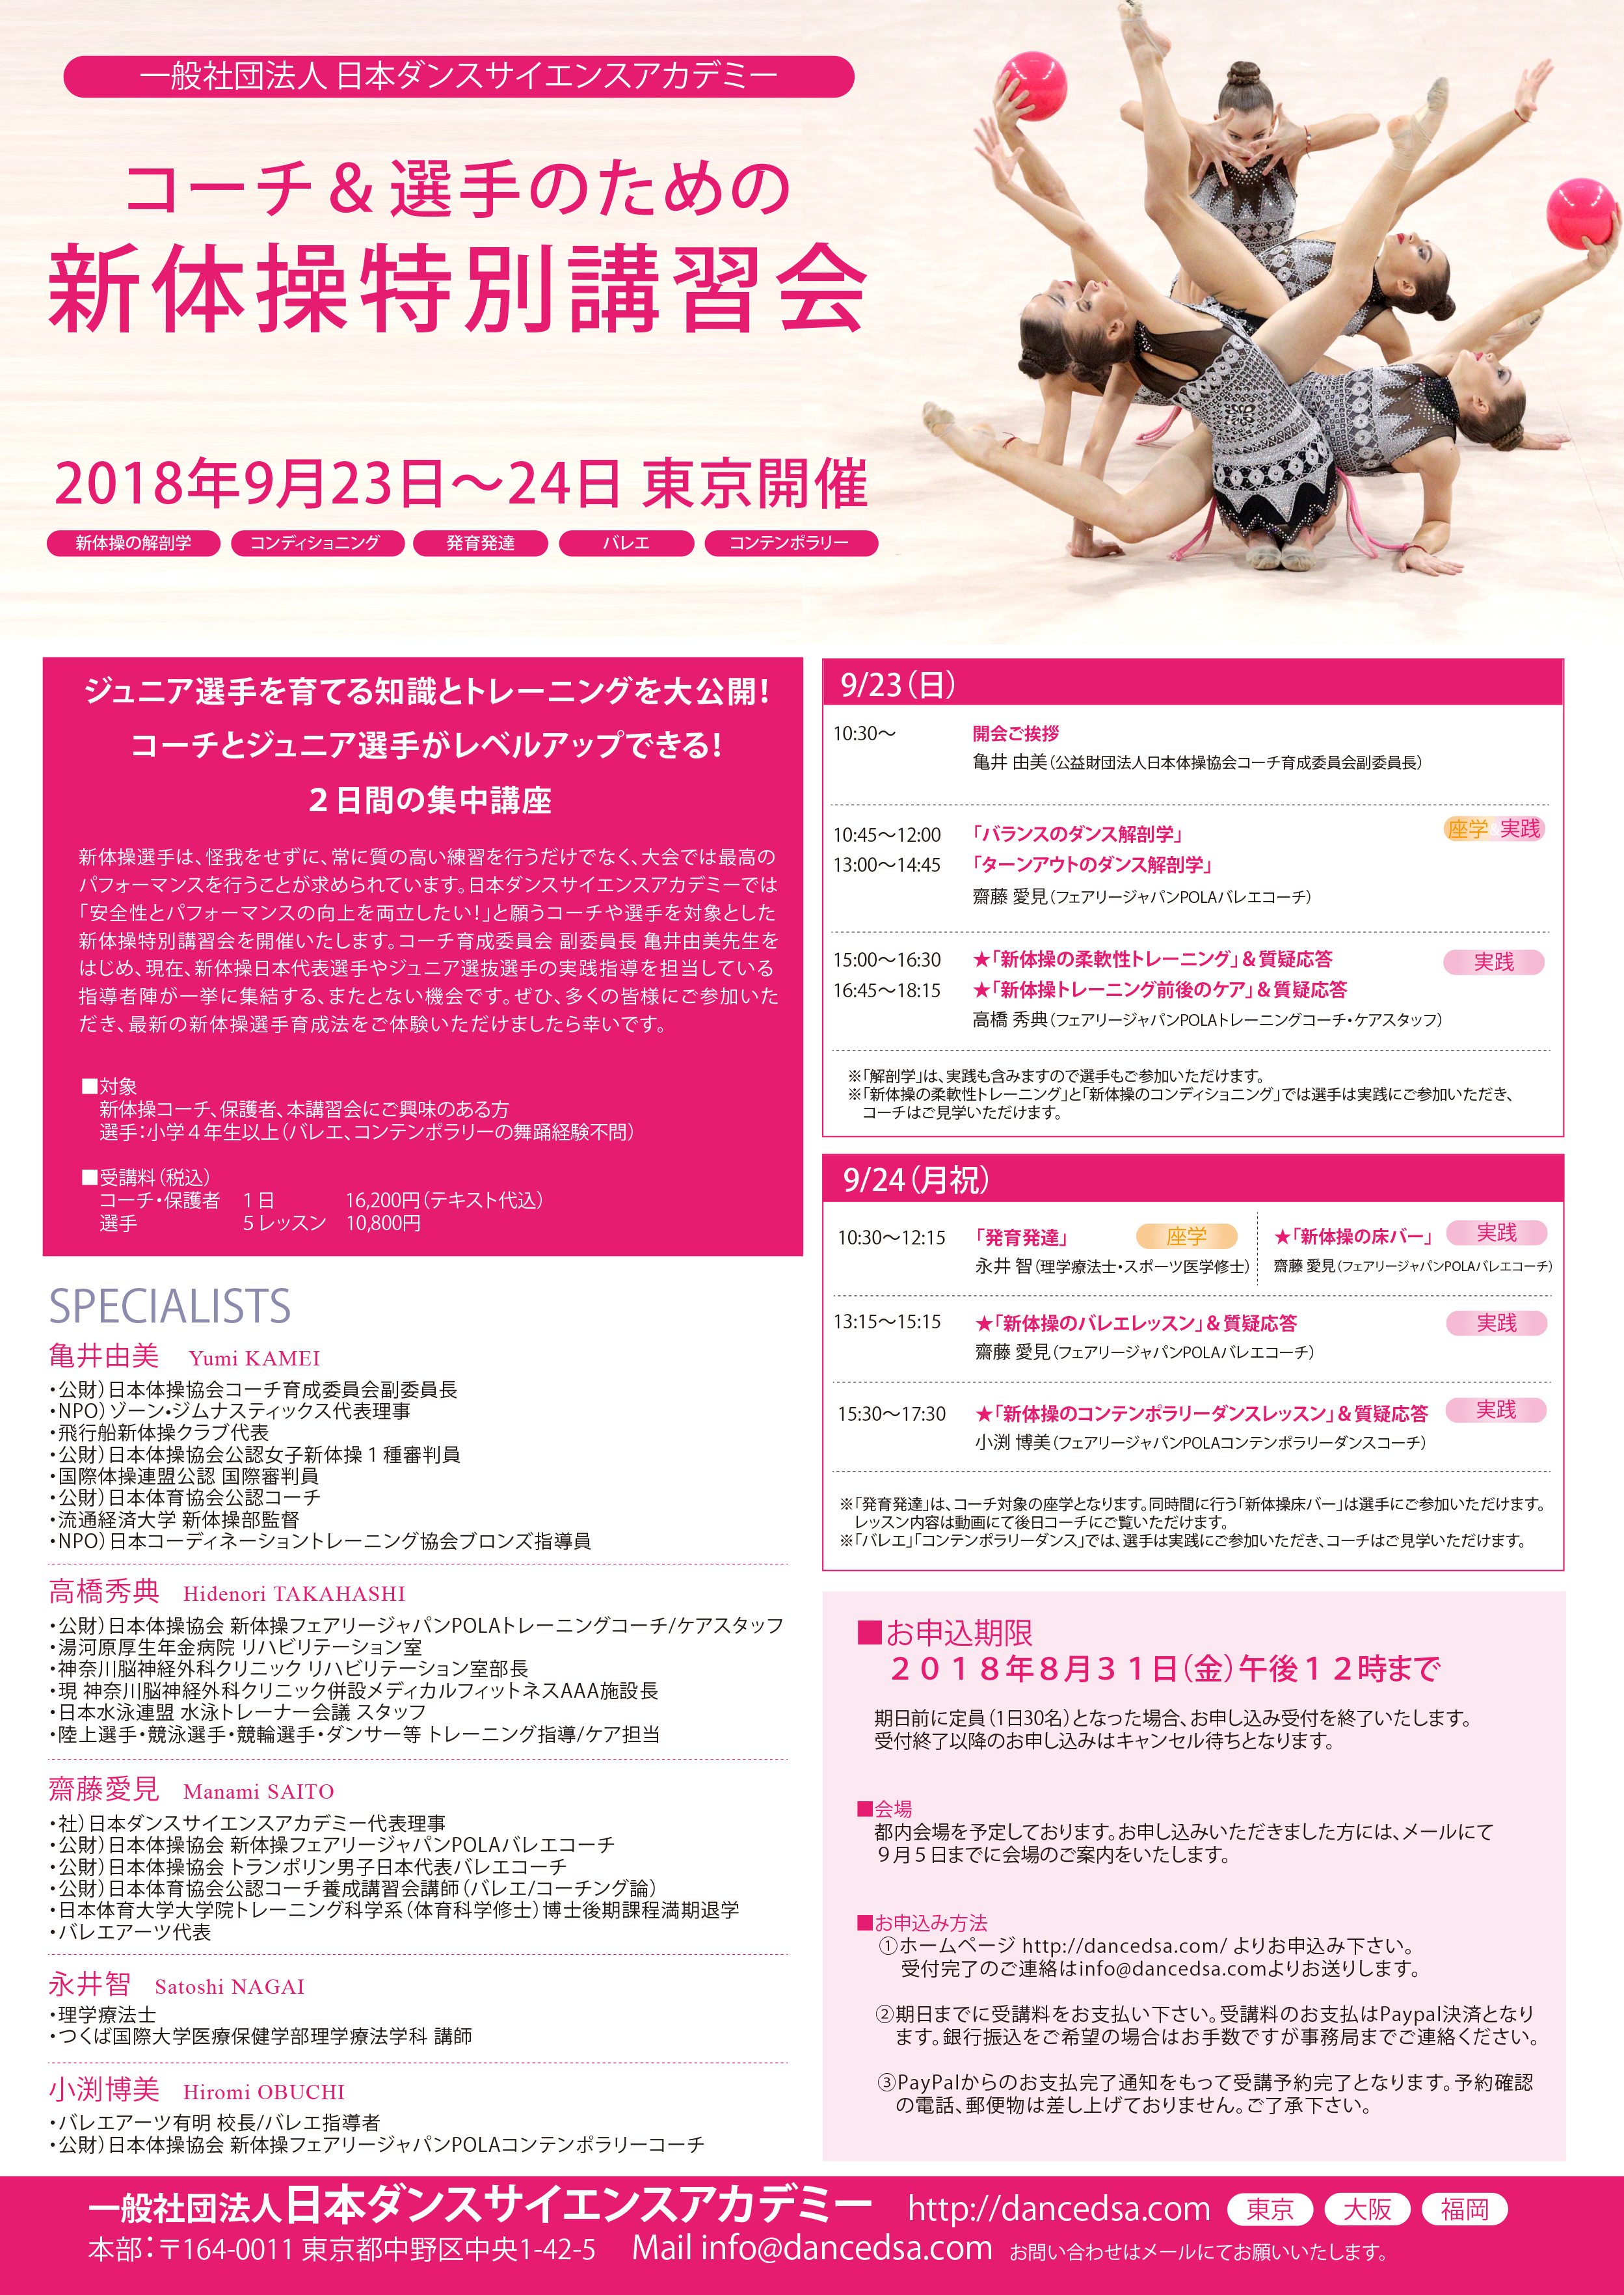 Seminar for Rhythmic Gymnastics